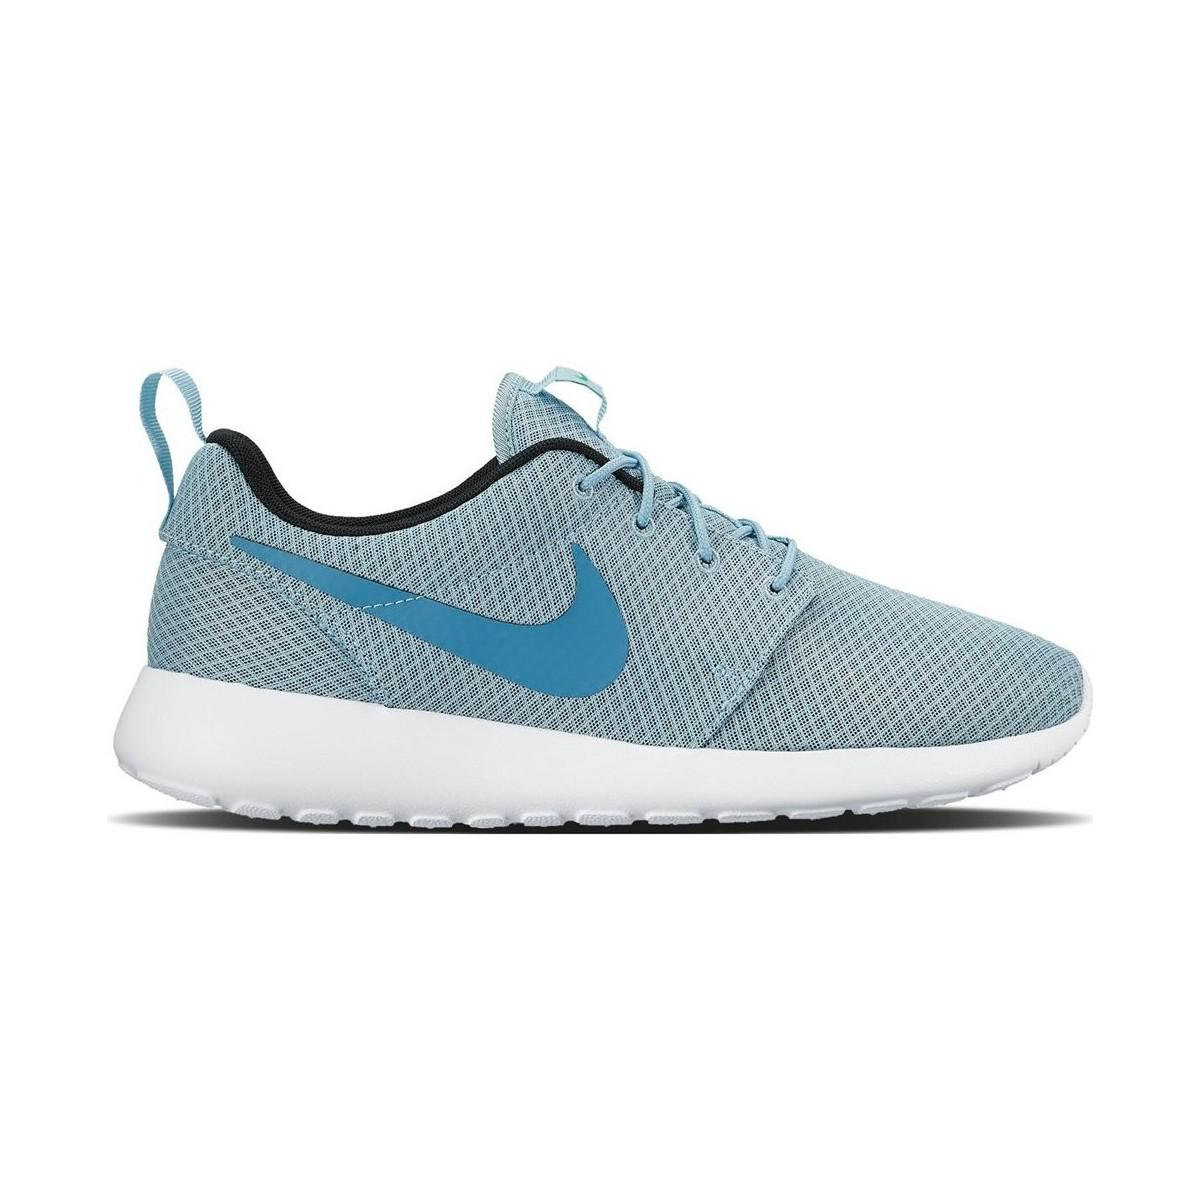 reputable site 6cd99 cea35 Nike Roshe One 511881 407 Men s Shoes (trainers) In Blue in Blue for ...